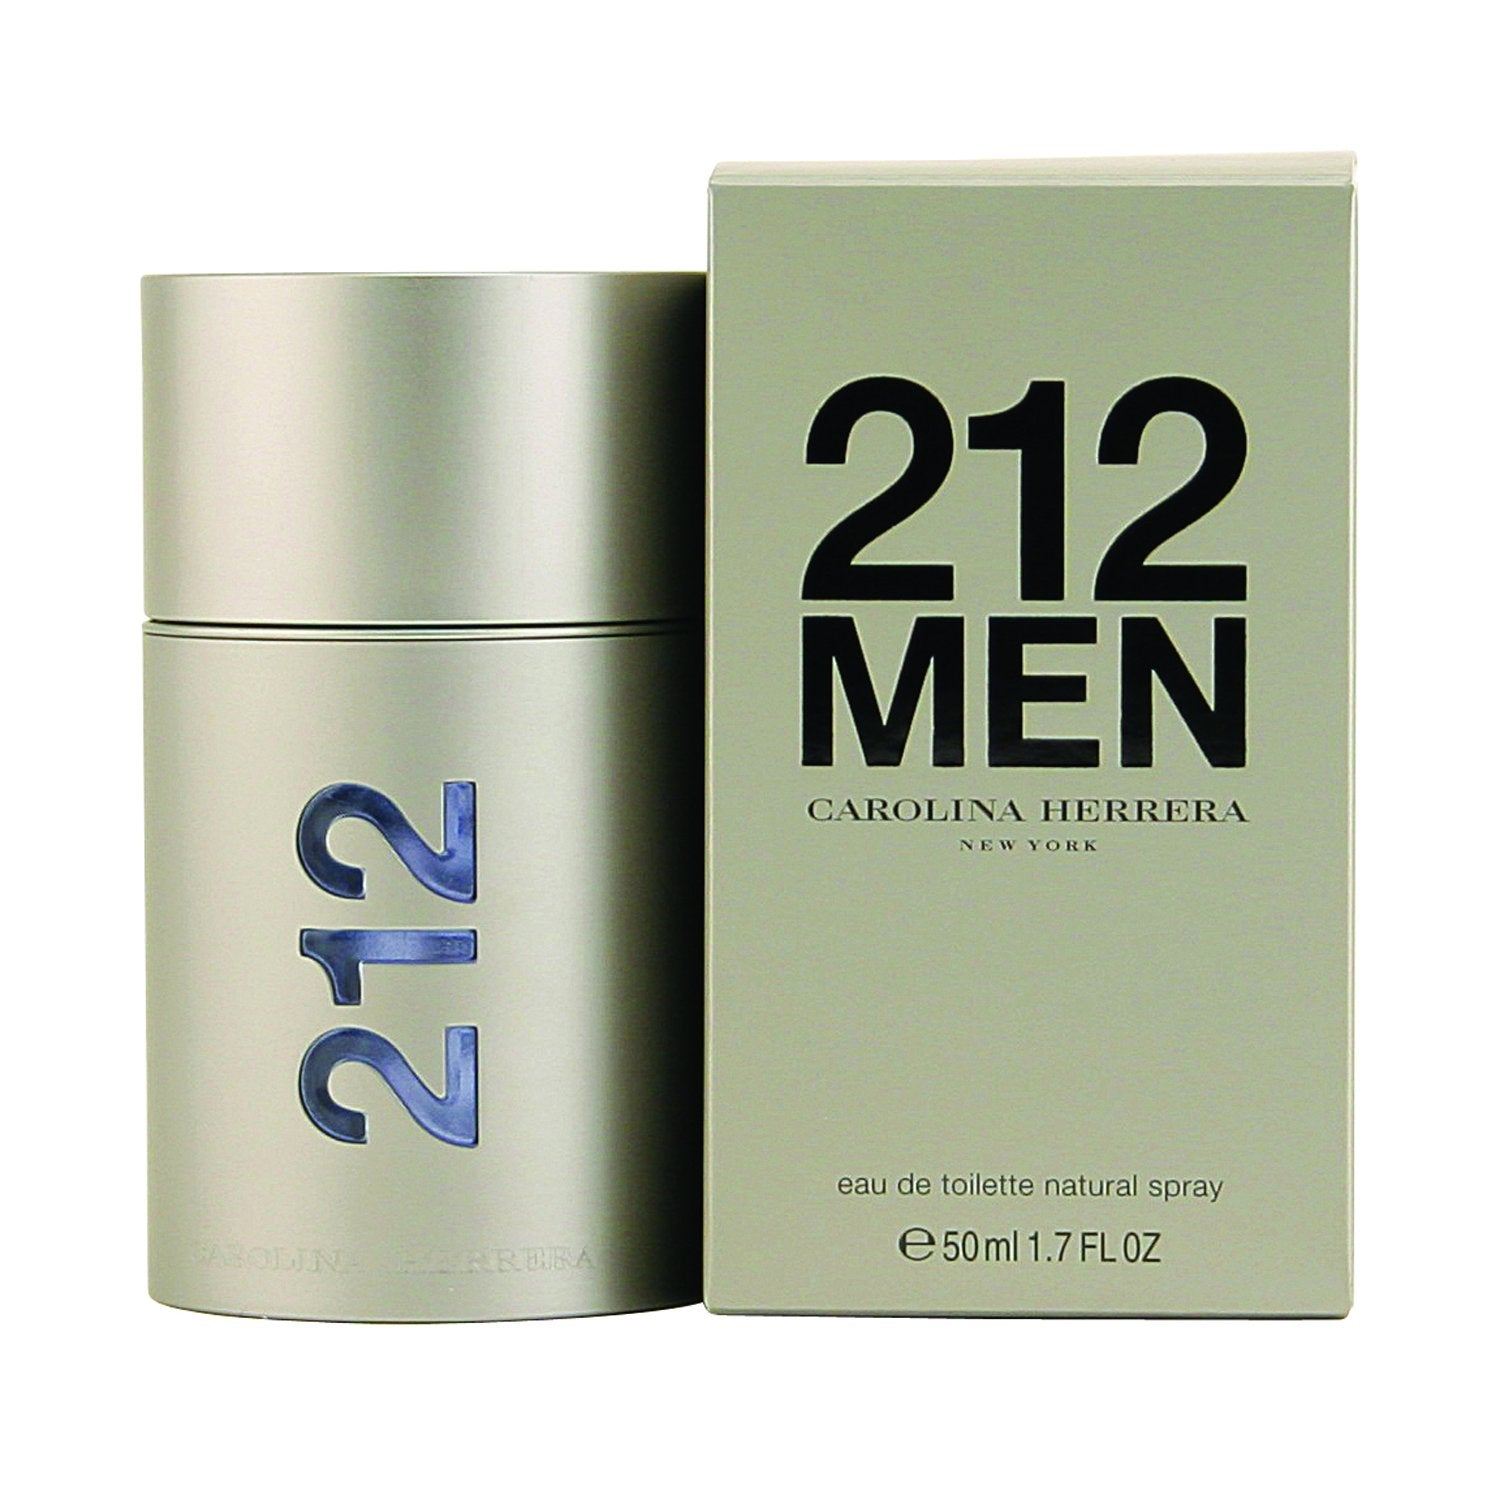 Cologne - 212 MEN BY CAROLINA HERRERA - EAU DE TOILETTE SPRAY